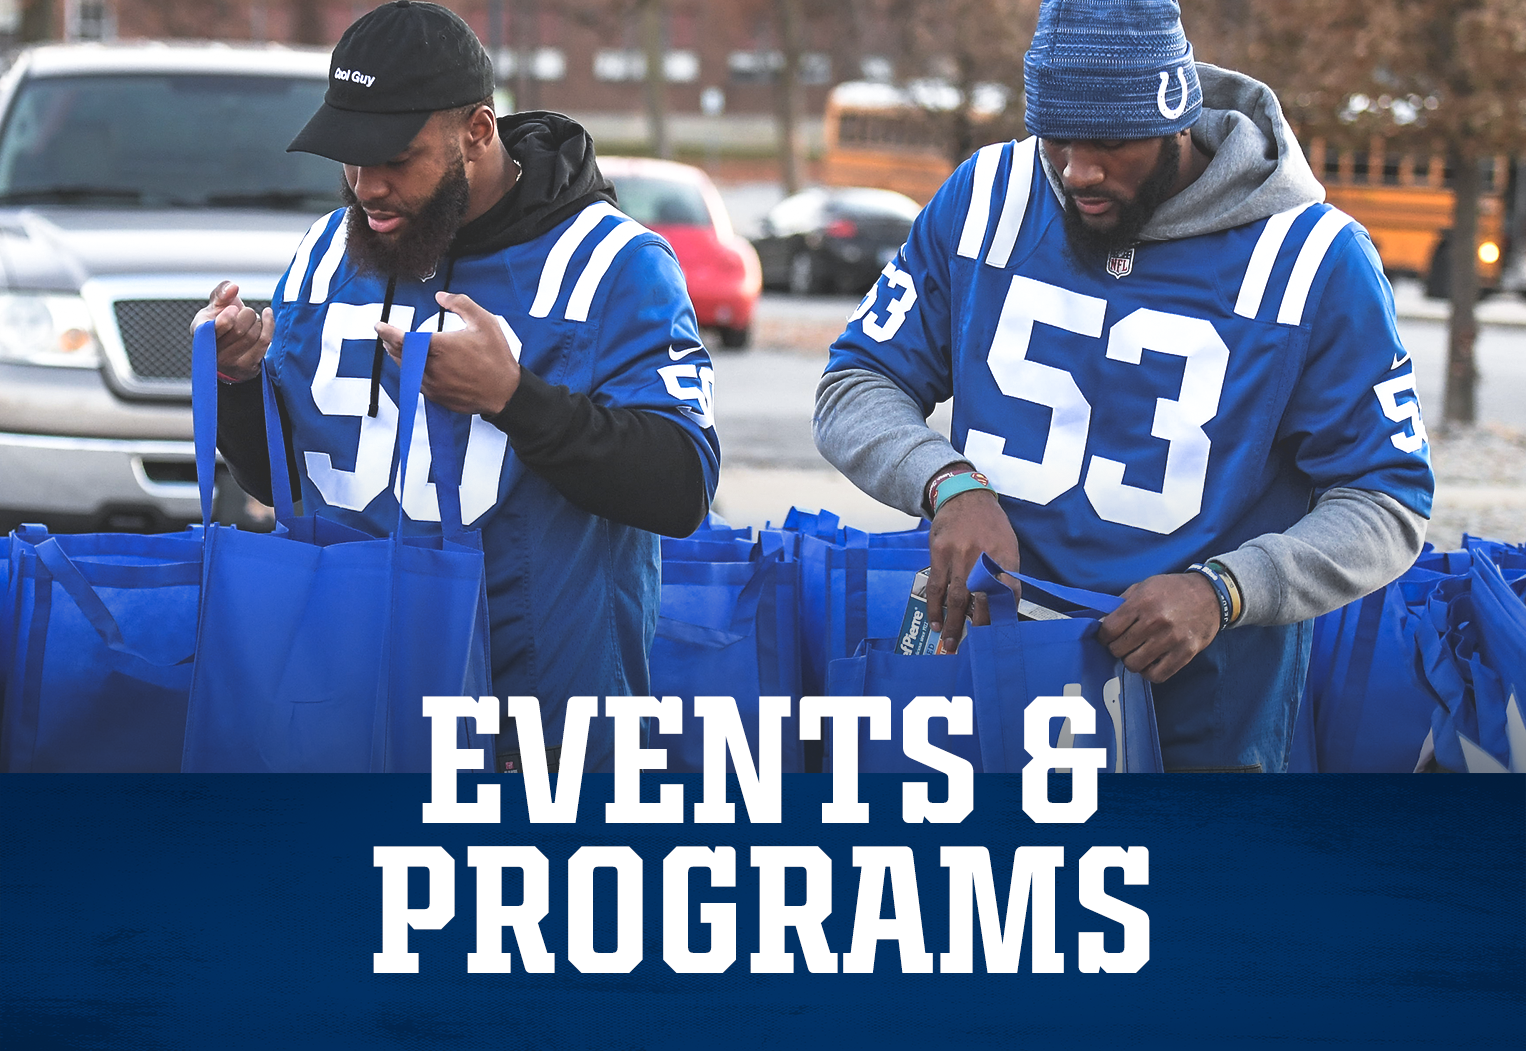 Indianapolis Colts Community Events And Programs